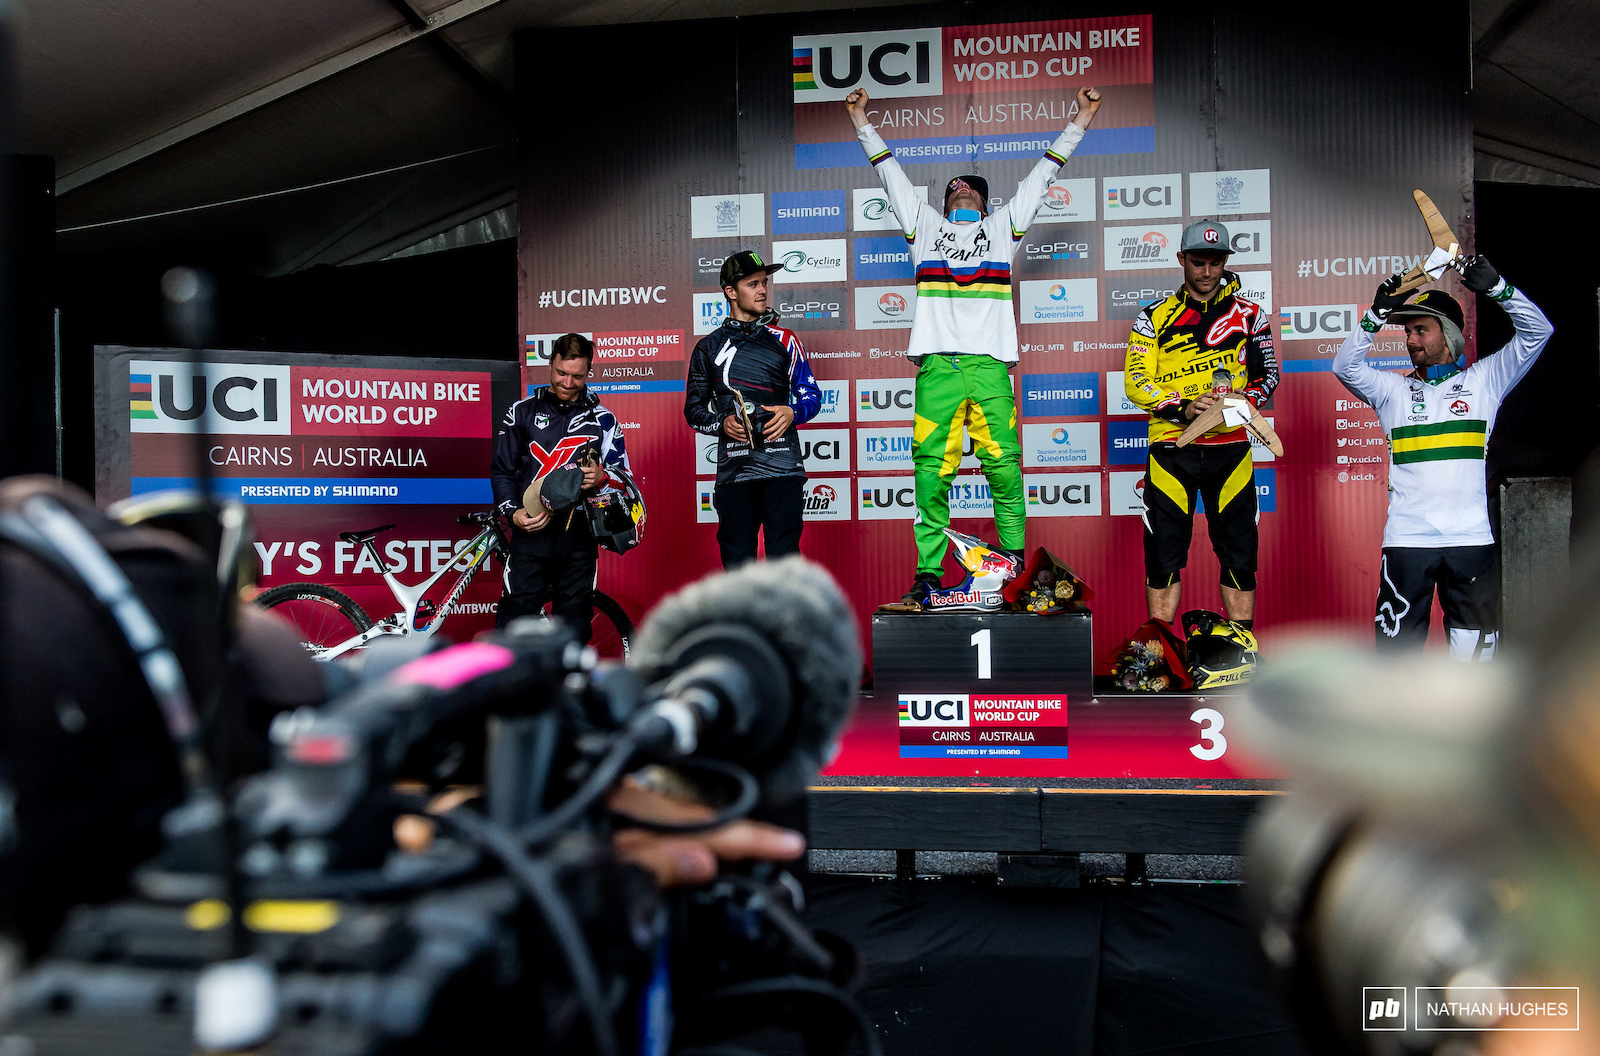 Loic Bruni taking the win the year before the Cairns World Champs.